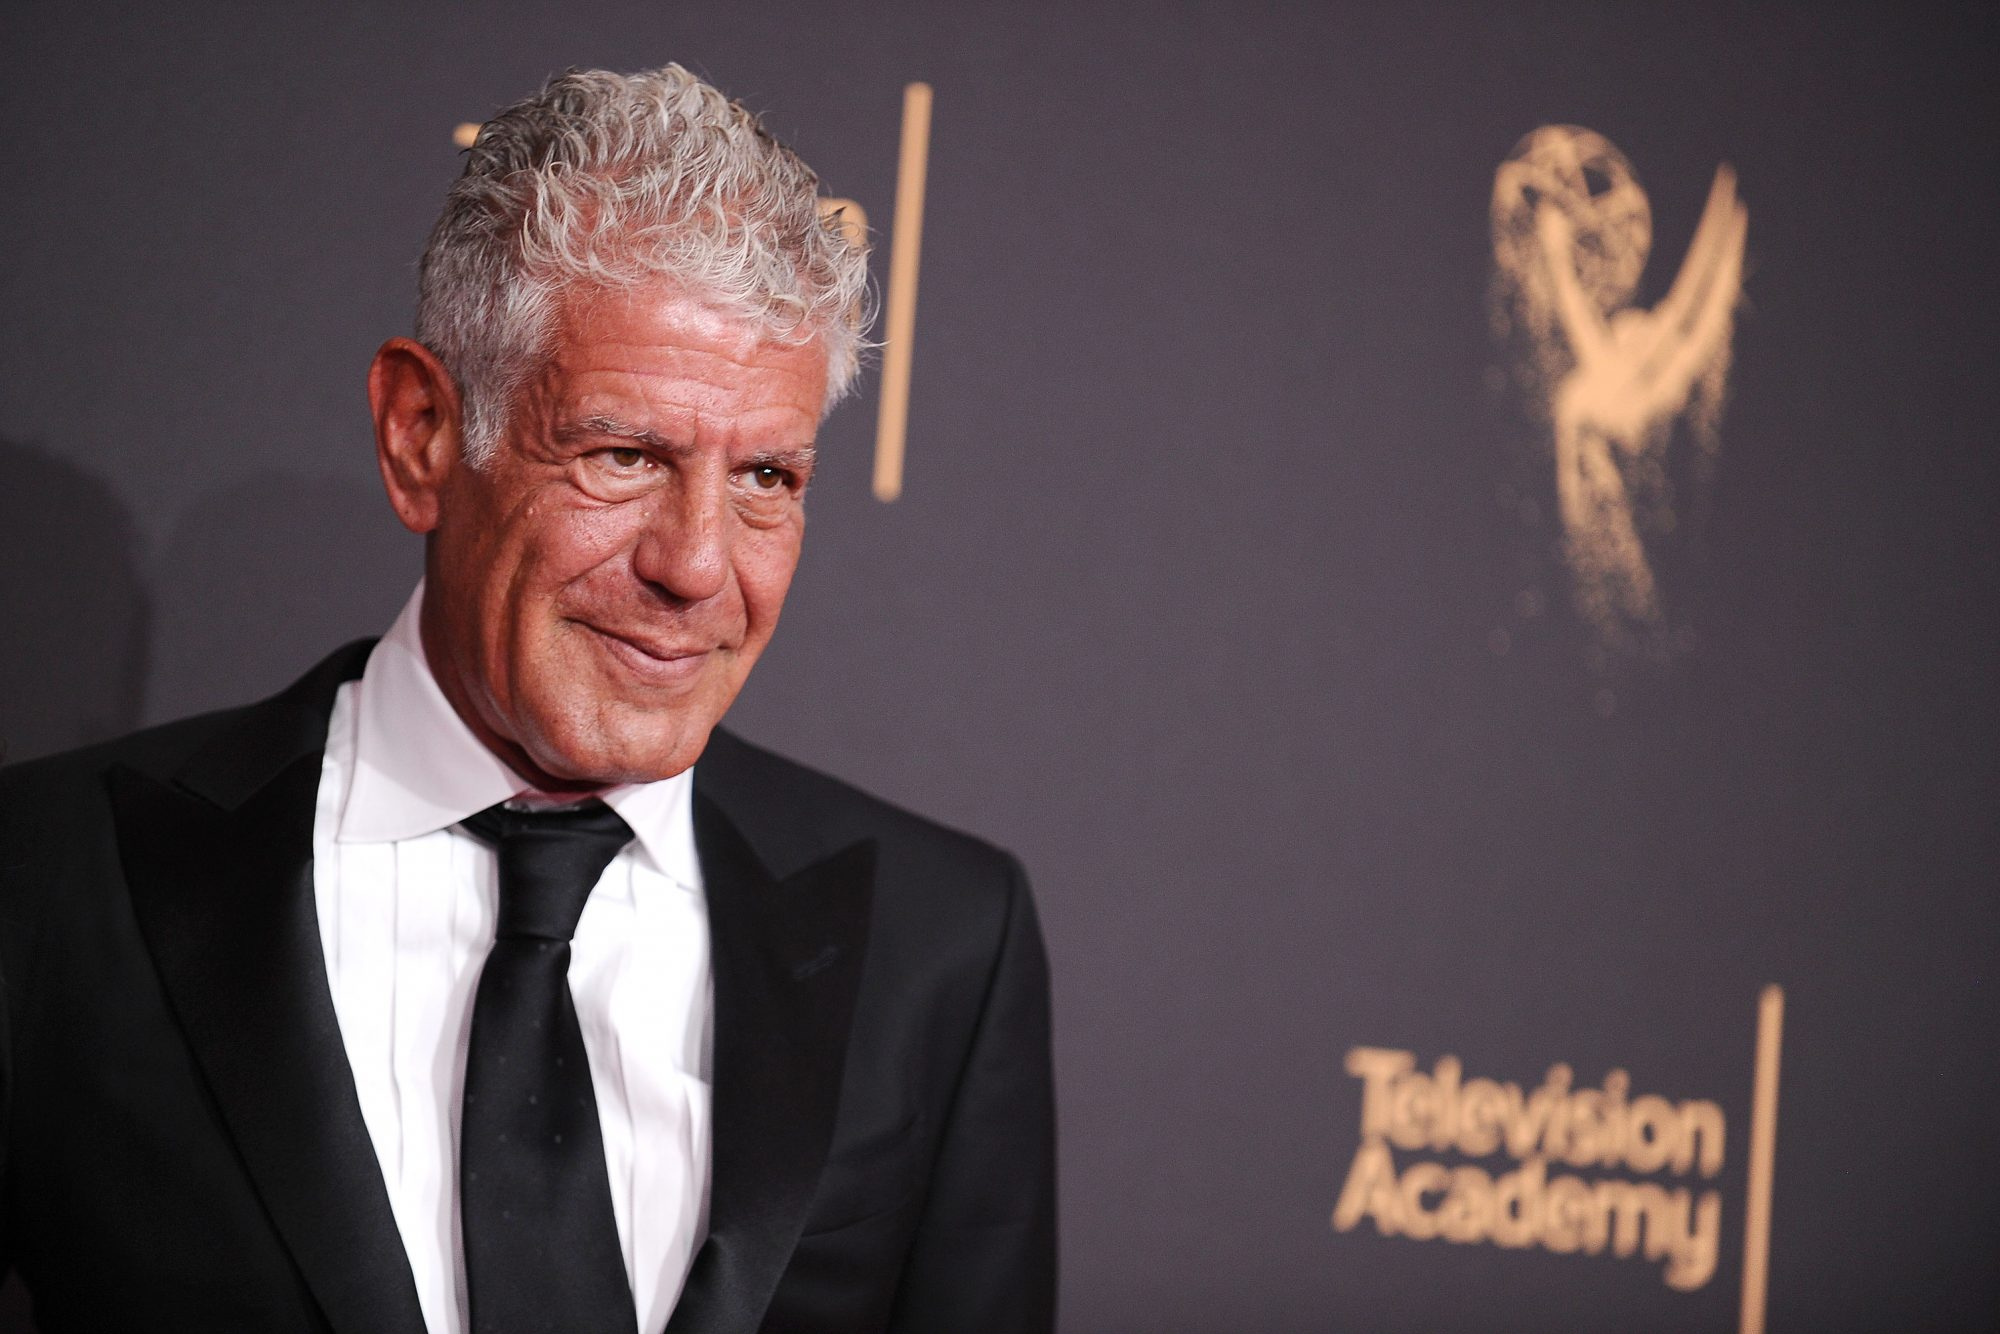 Anthony Bourdain Smiling